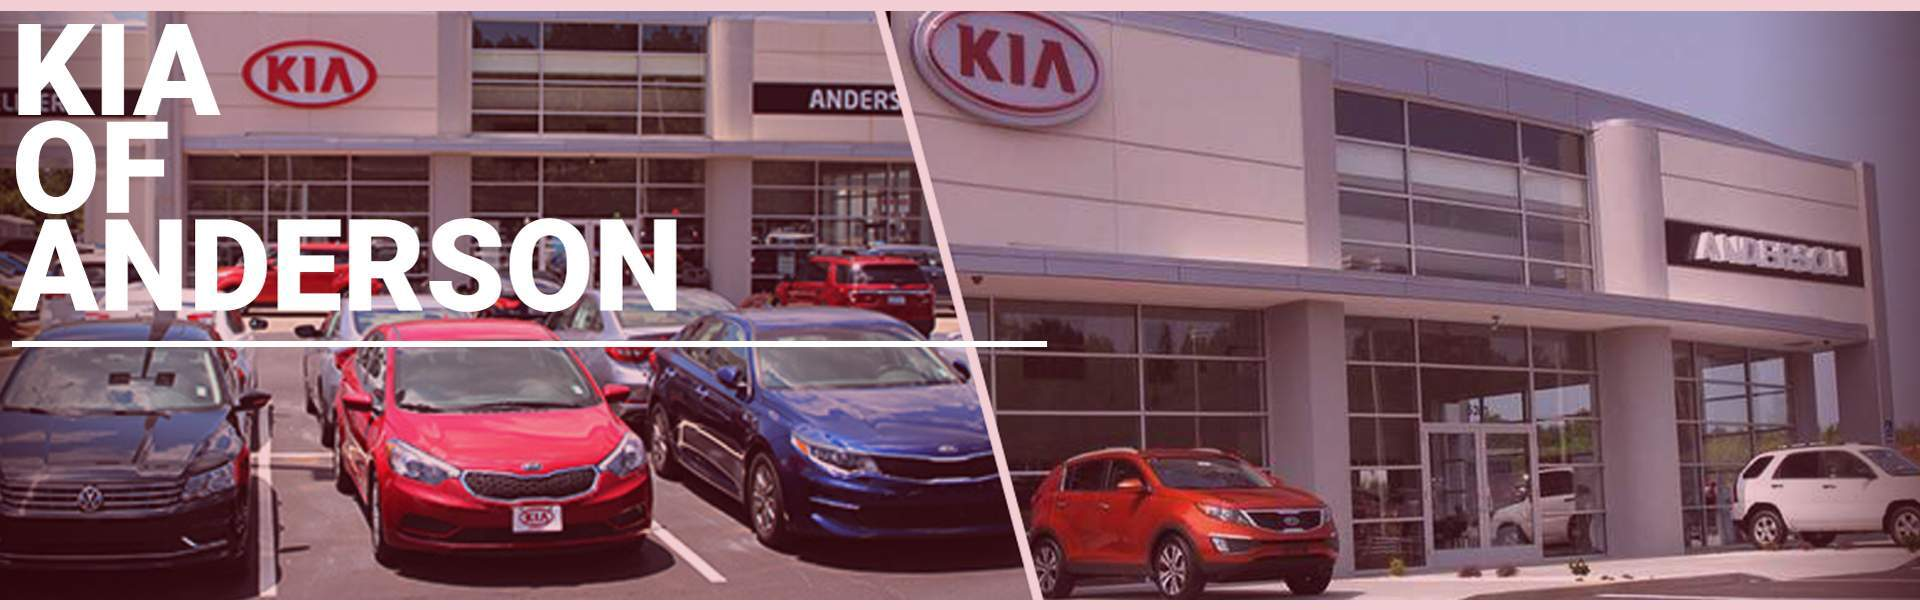 Kia of Anderson in Pendleton, SC